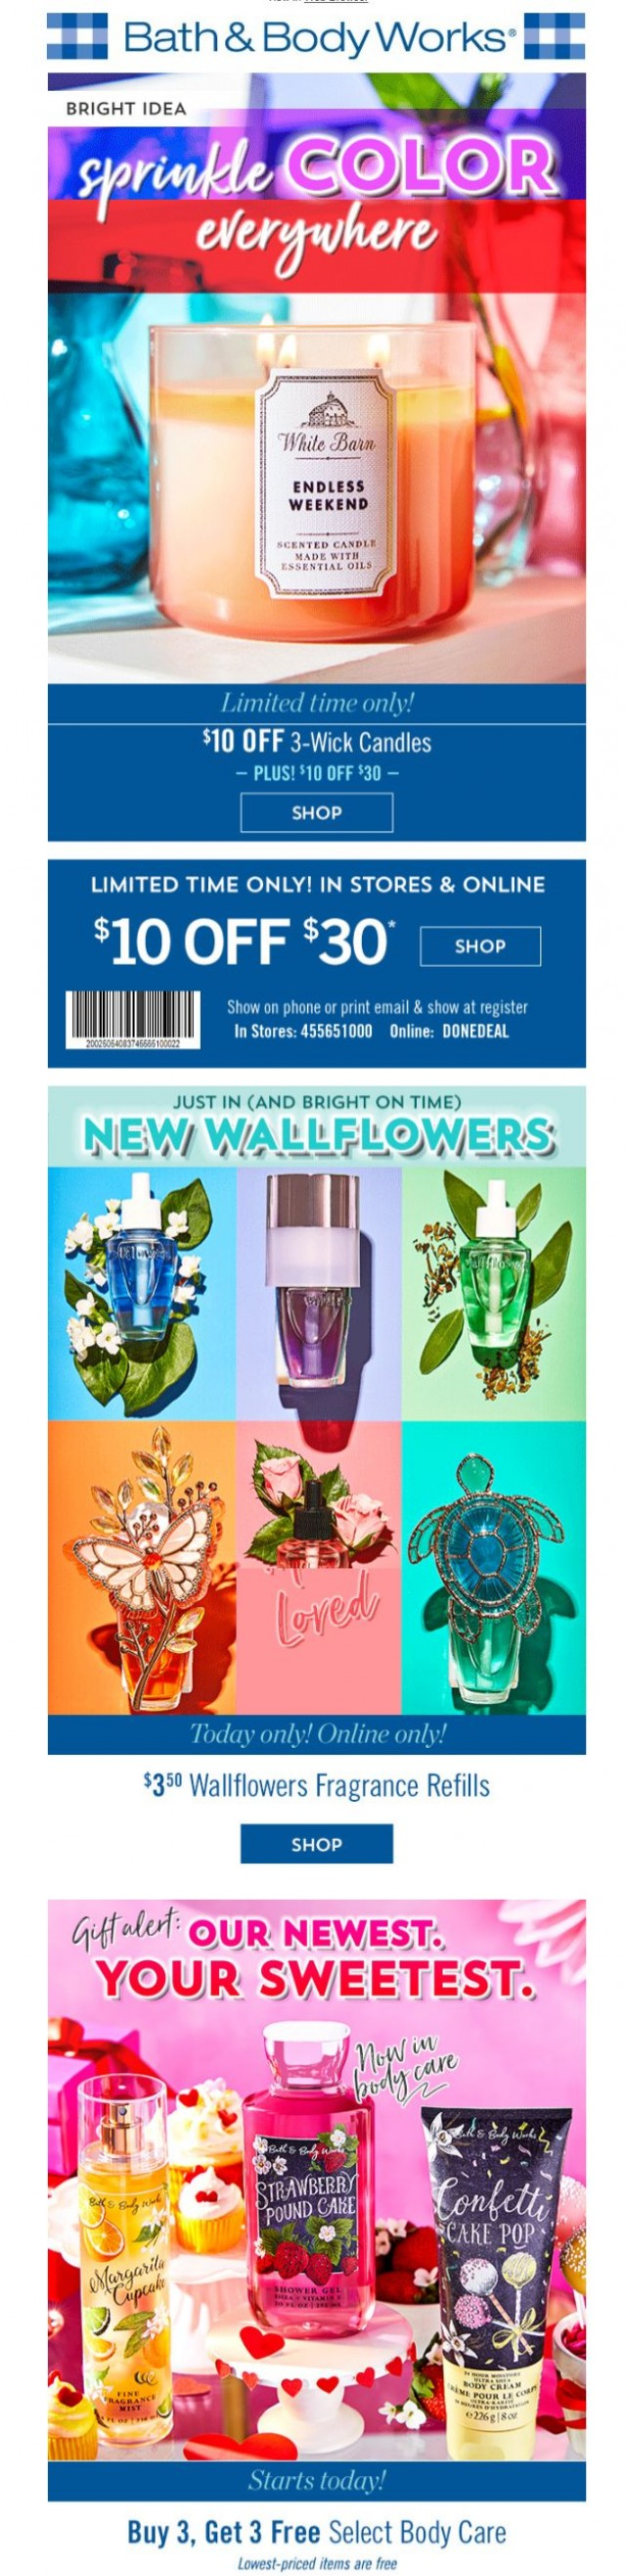 Coupon for: Bath & Body Works - Bright idea!